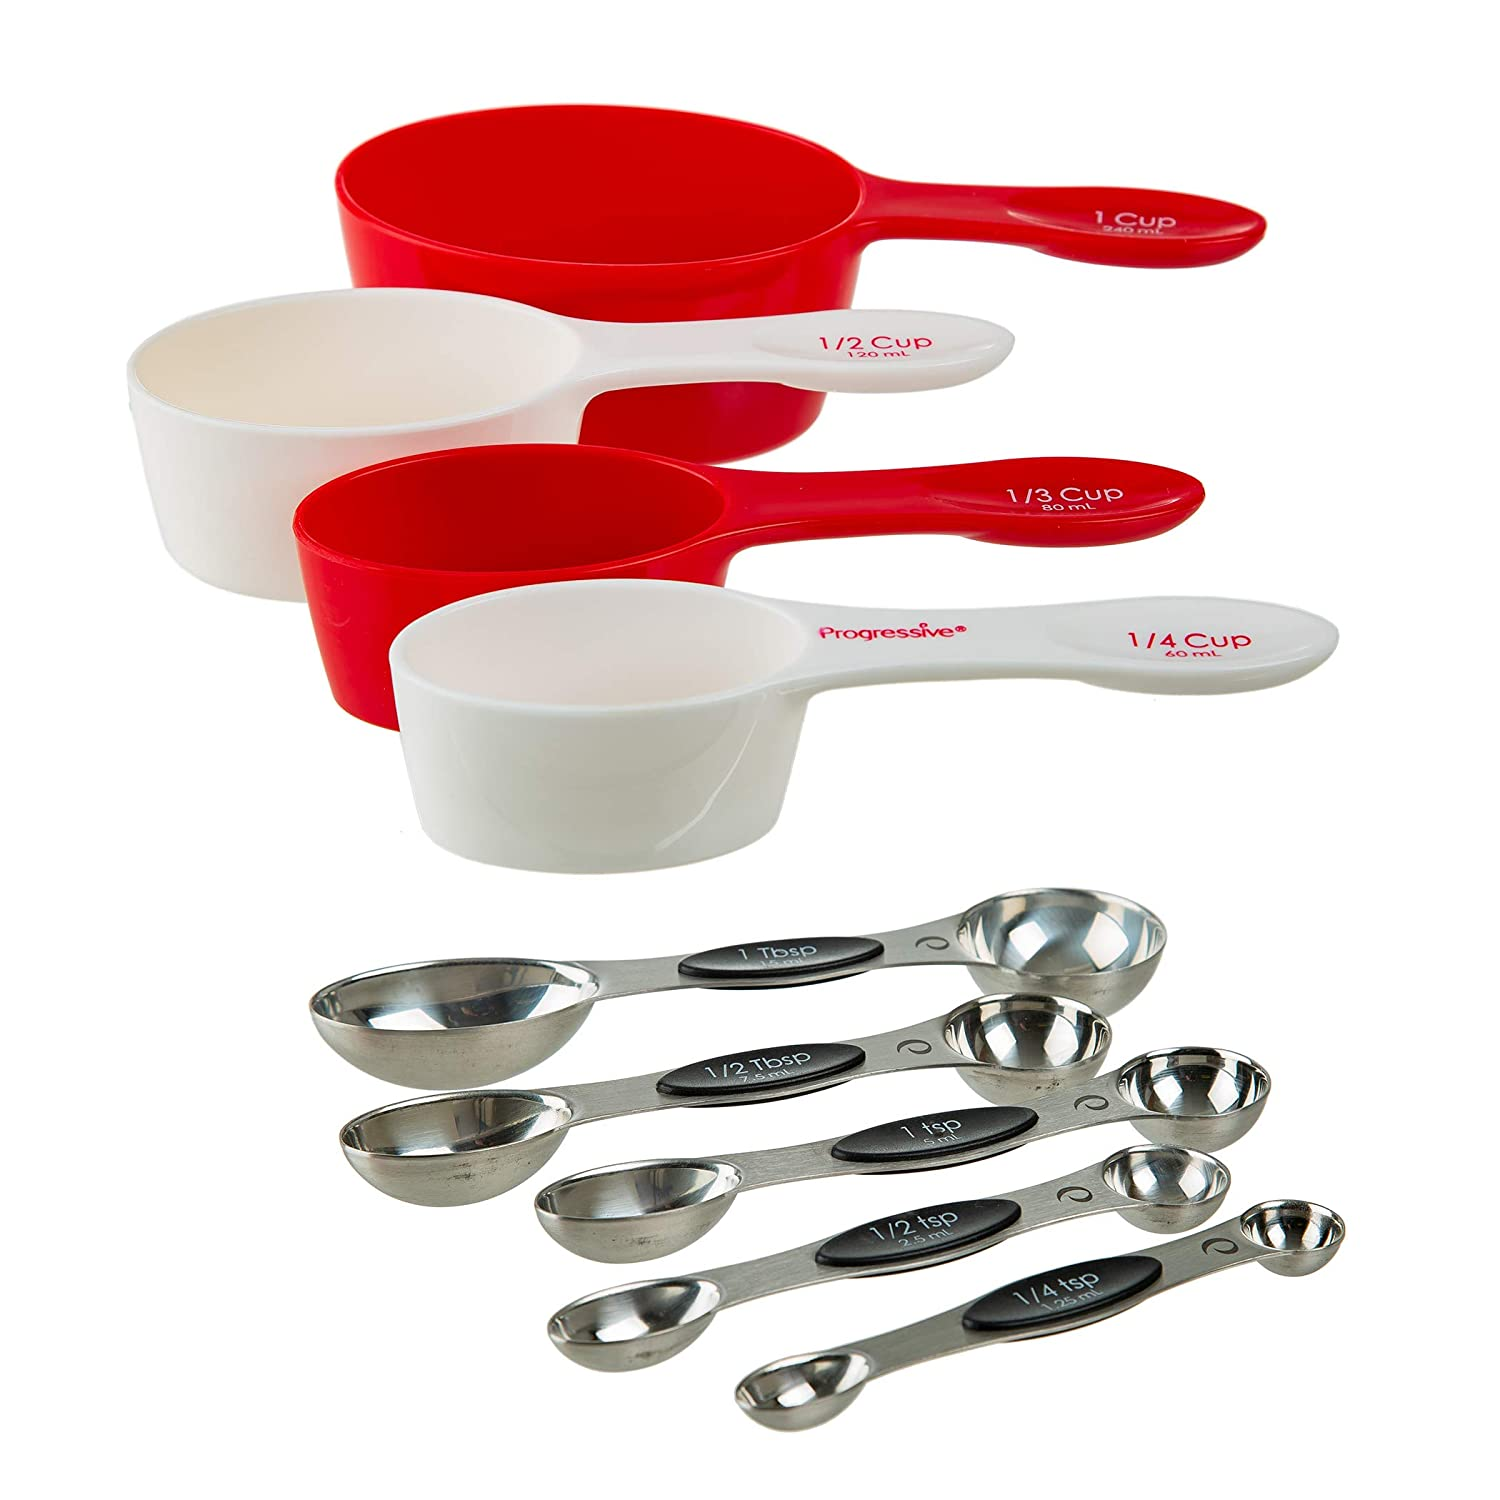 Prepworks by Progressive Magnetic Measuring Cups - 4 Piece Set Includes ¼ Cup, ⅓ Cup, ½ Cup and 1 Cup (BA-580) ⅓ Cup